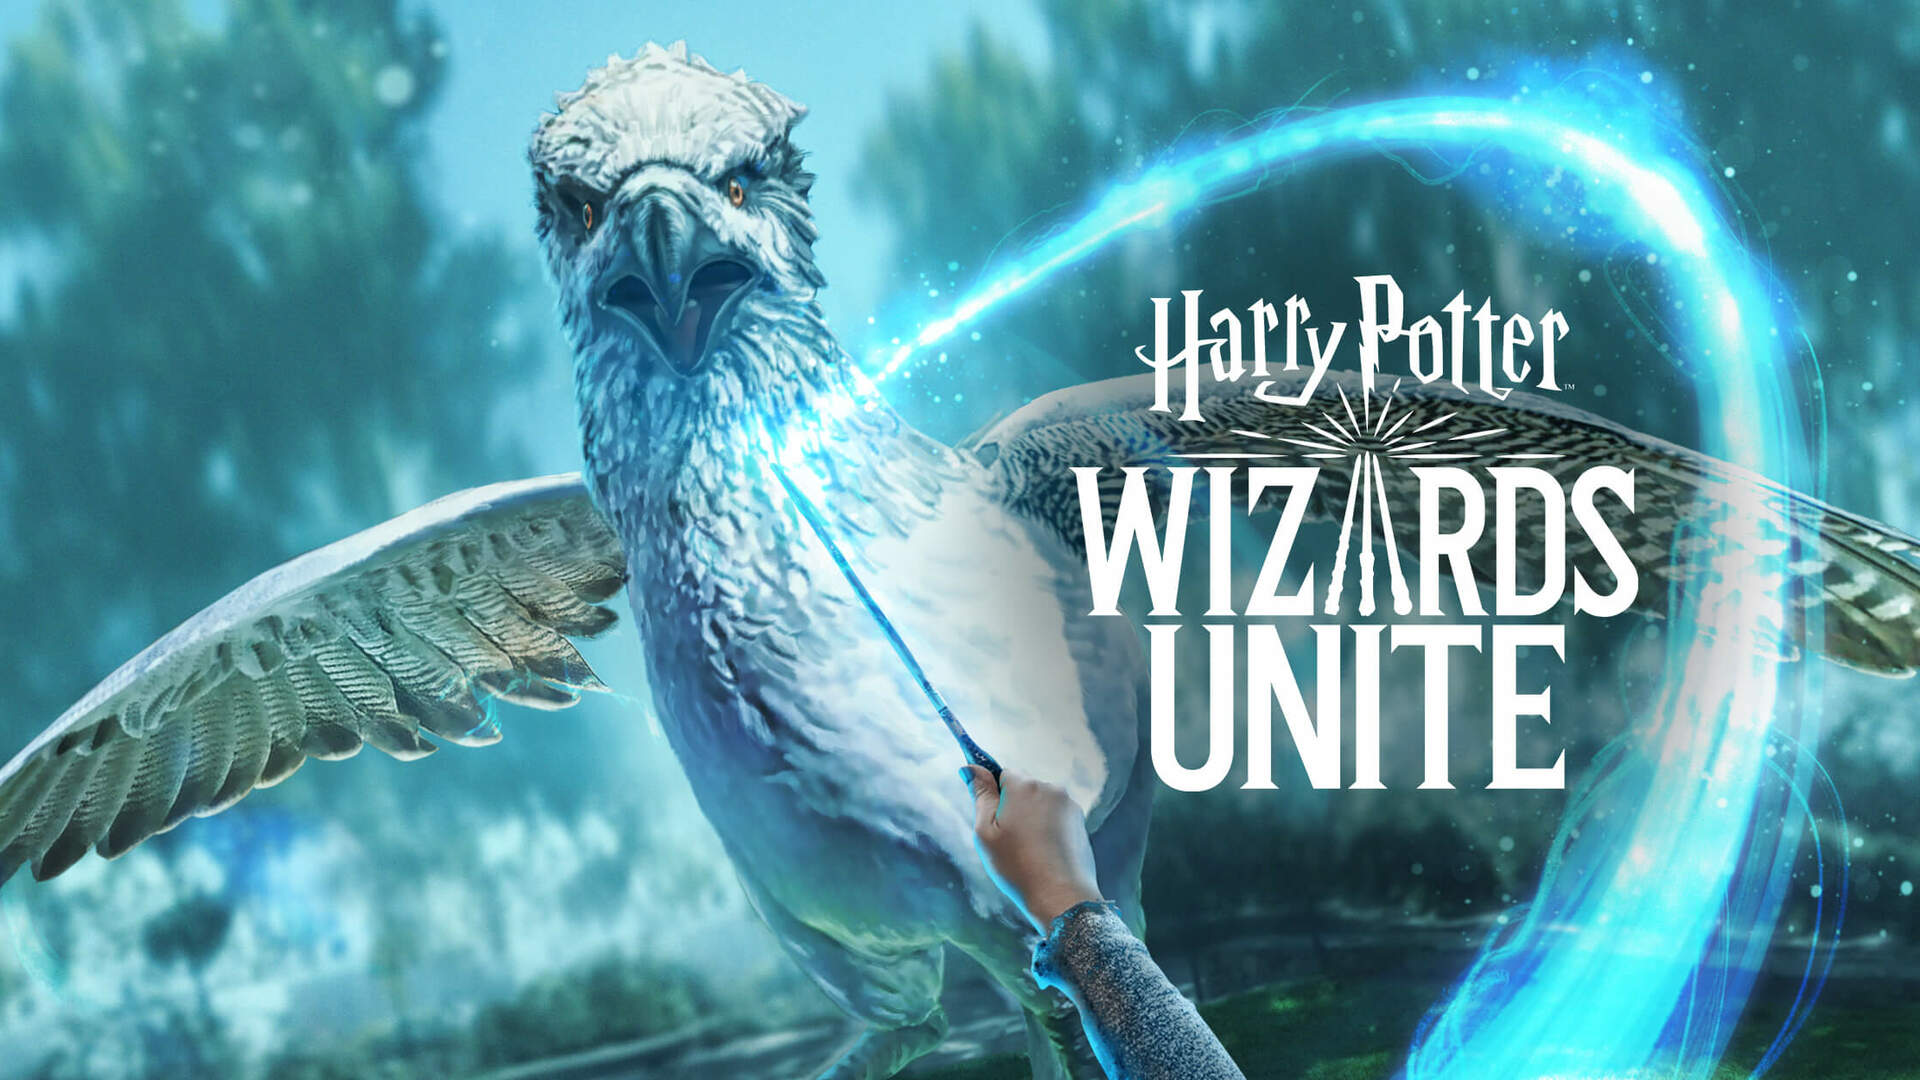 Harry Potter: Wizards Unite Launches Later This Week, Pokemon Go Fest-Style Event Possibly This Summer